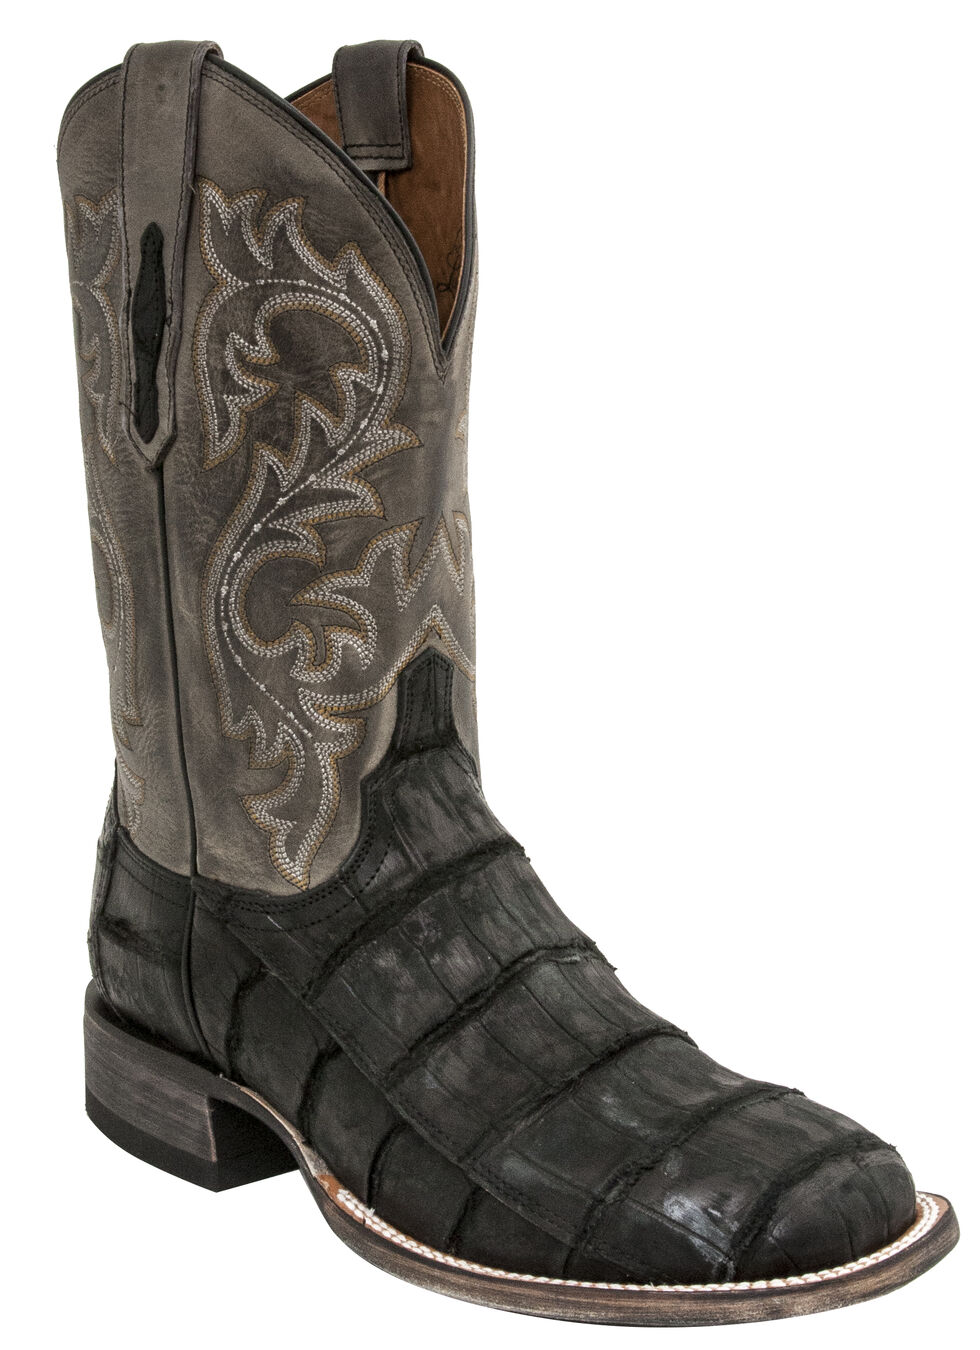 Lucchese Men's Handmade Malcolm Alligator Western Boots - Square Toe, Black, hi-res